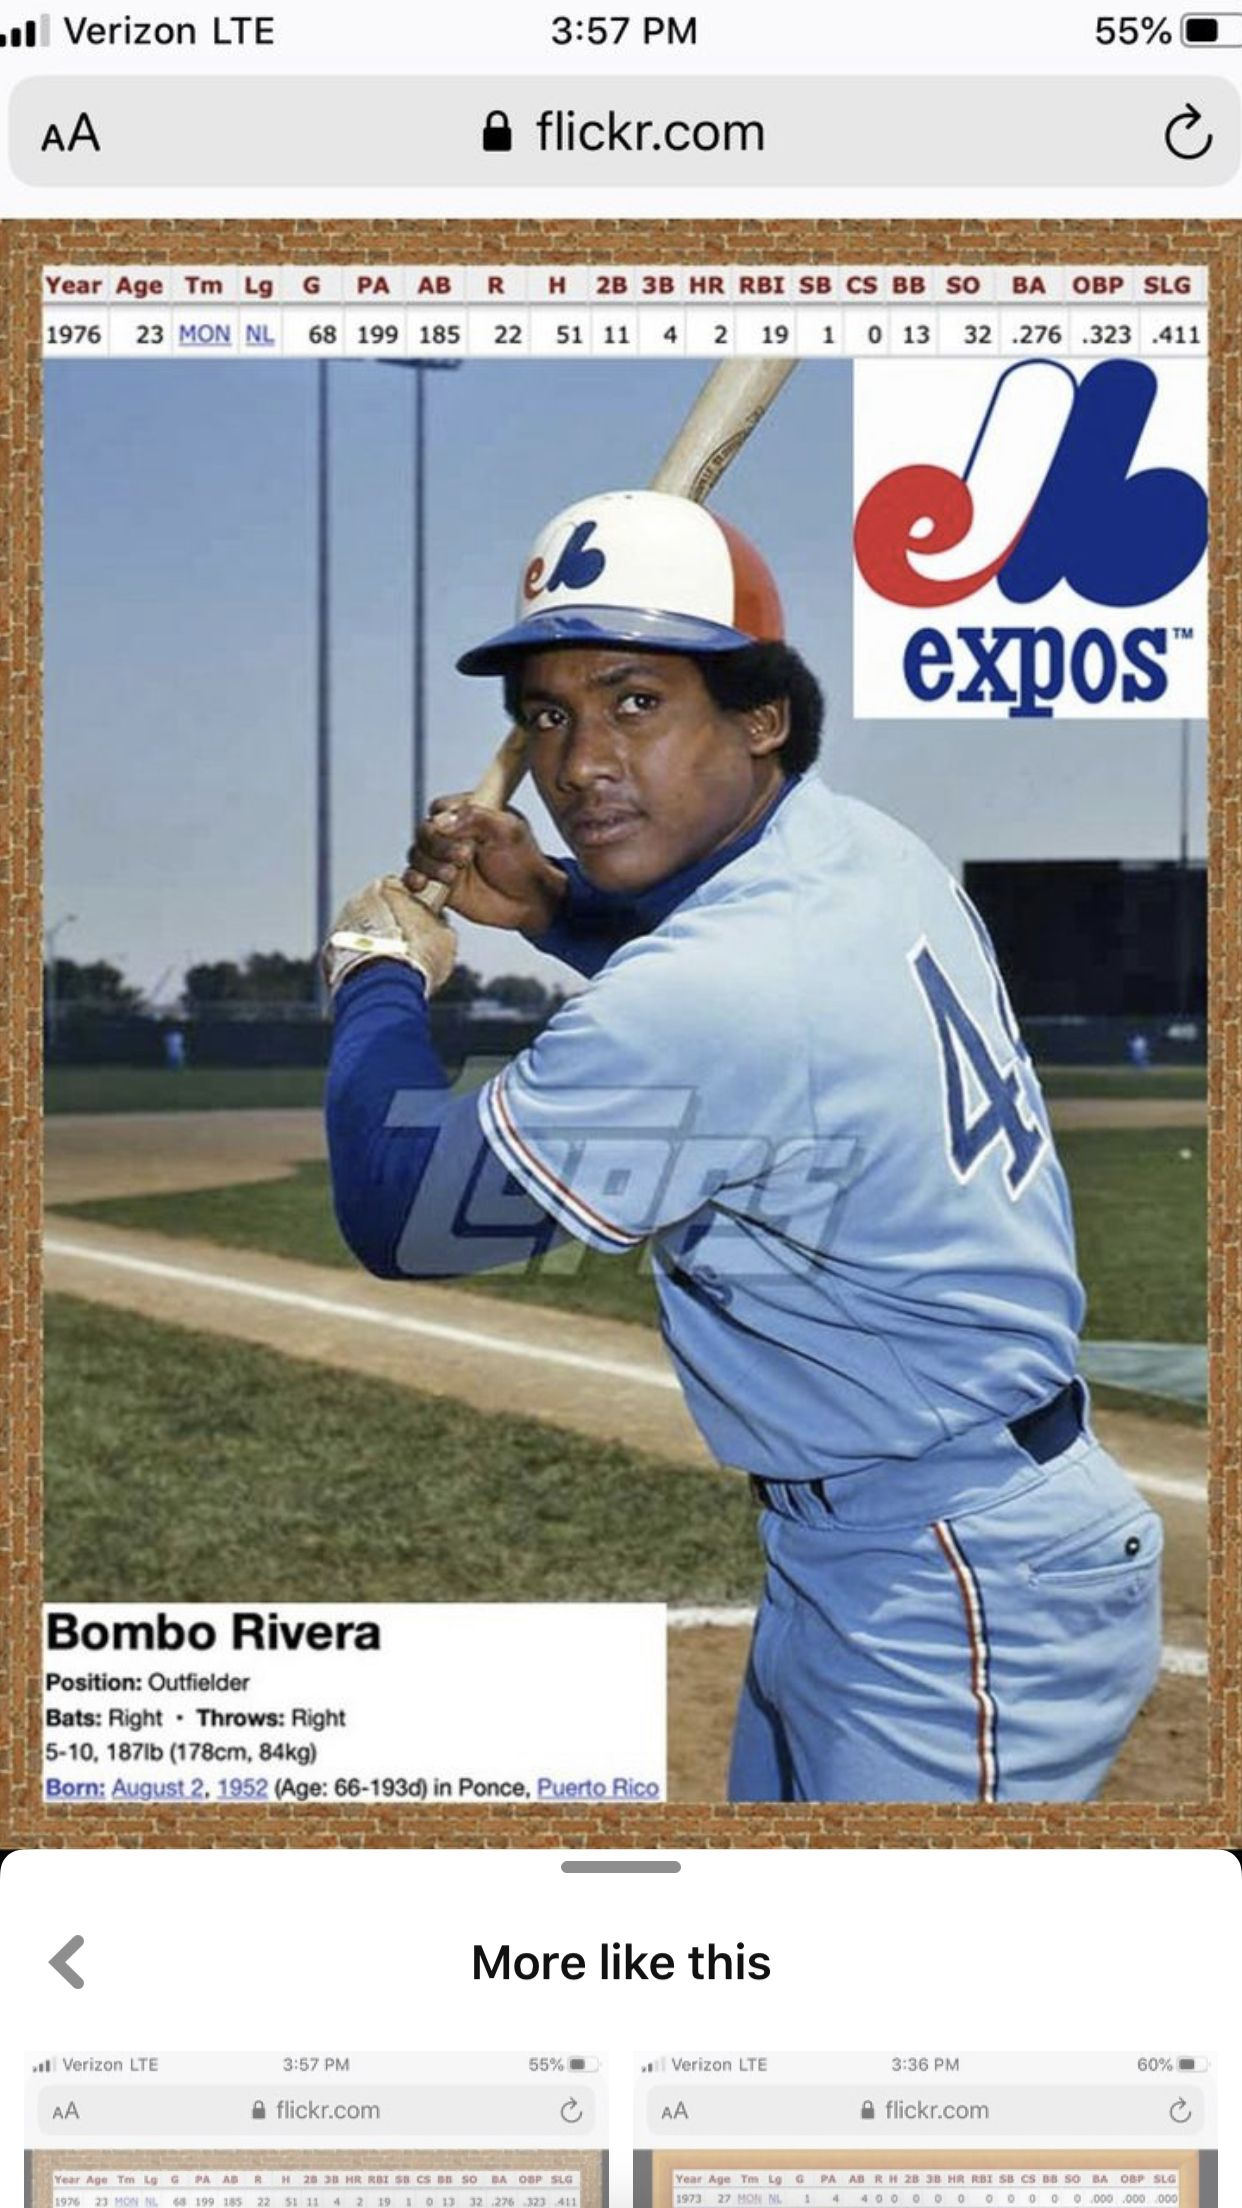 Pin By Marc Brunelle On Baseball Players Who Played Winter Ball In Puerto Rico In 2020 Expos Baseball Cards Baseball